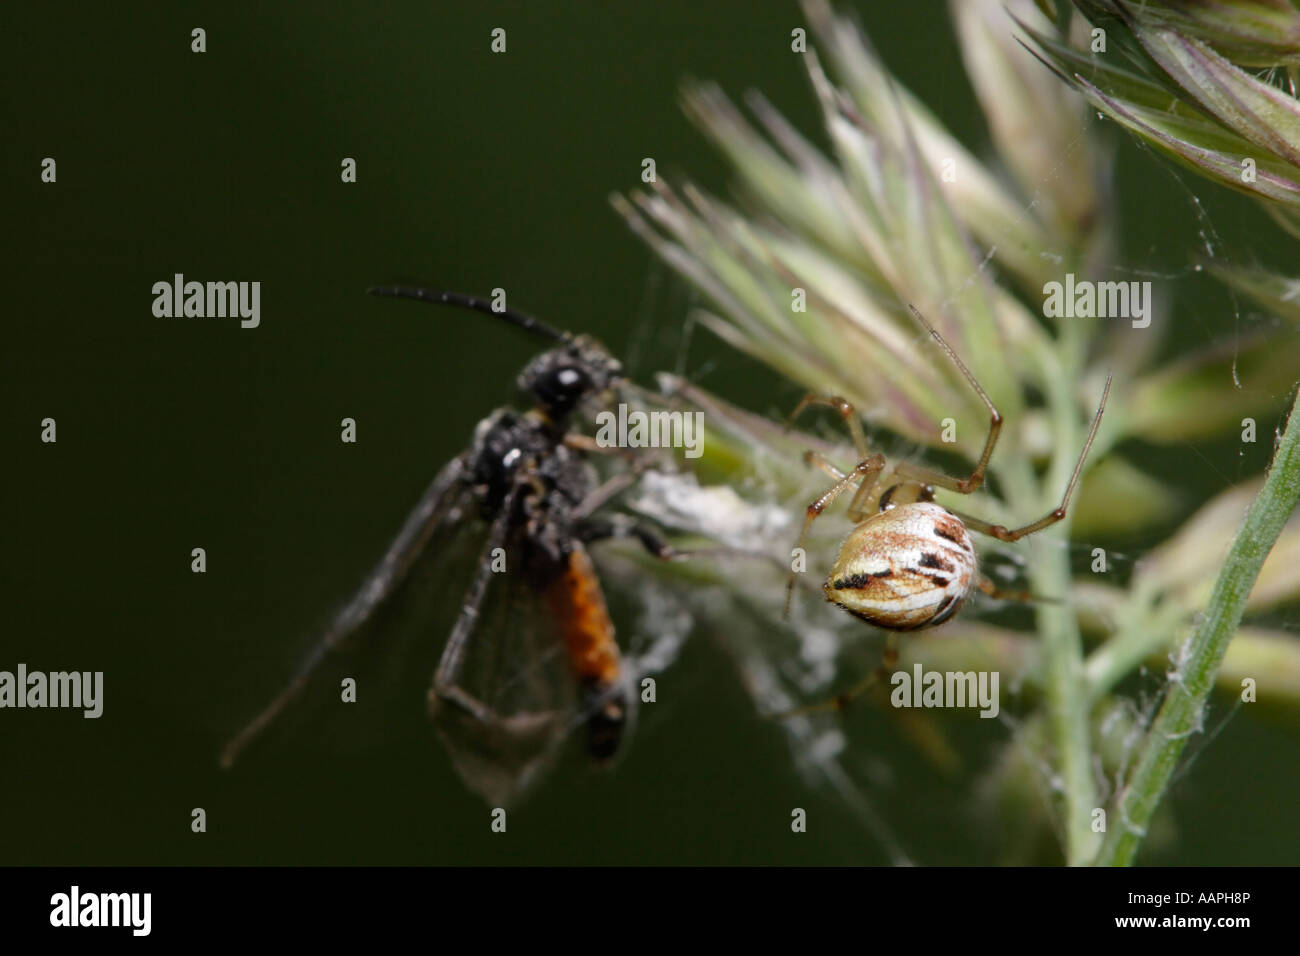 Spider catching wasp (Theridion impressum and sawfly) - Stock Image